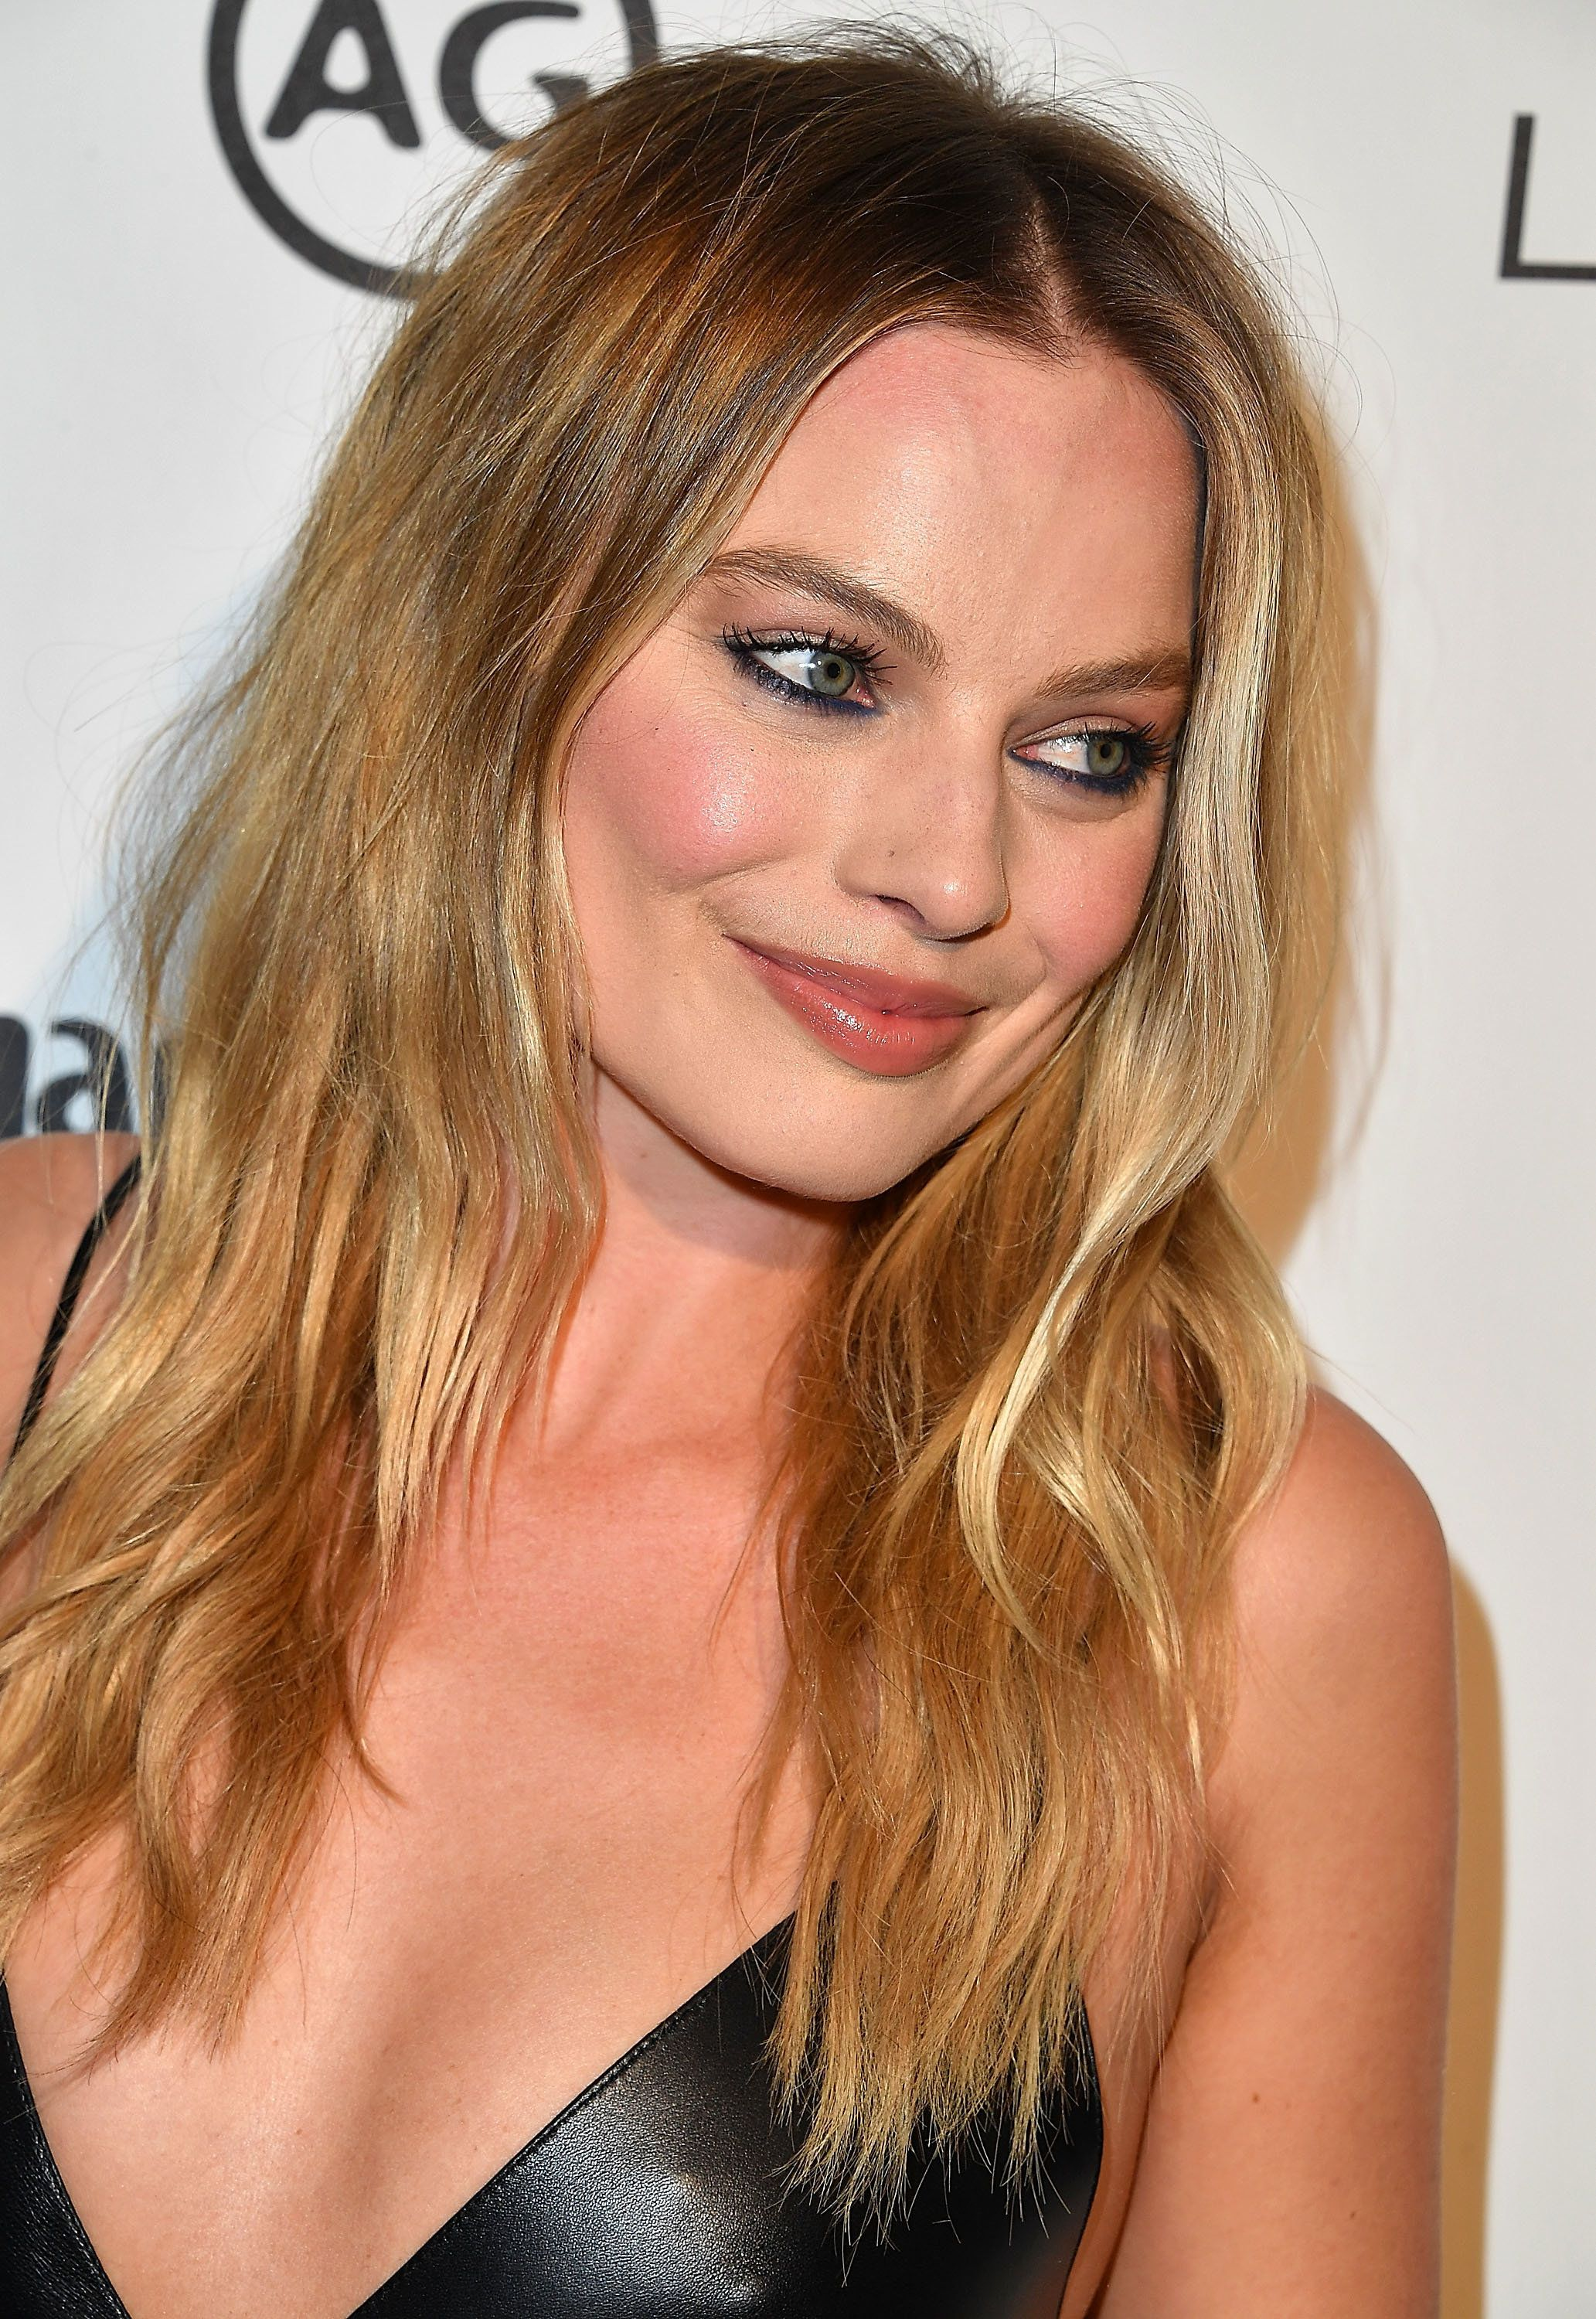 Margot Robbie's Weird Foundation Hack Is Kind Of